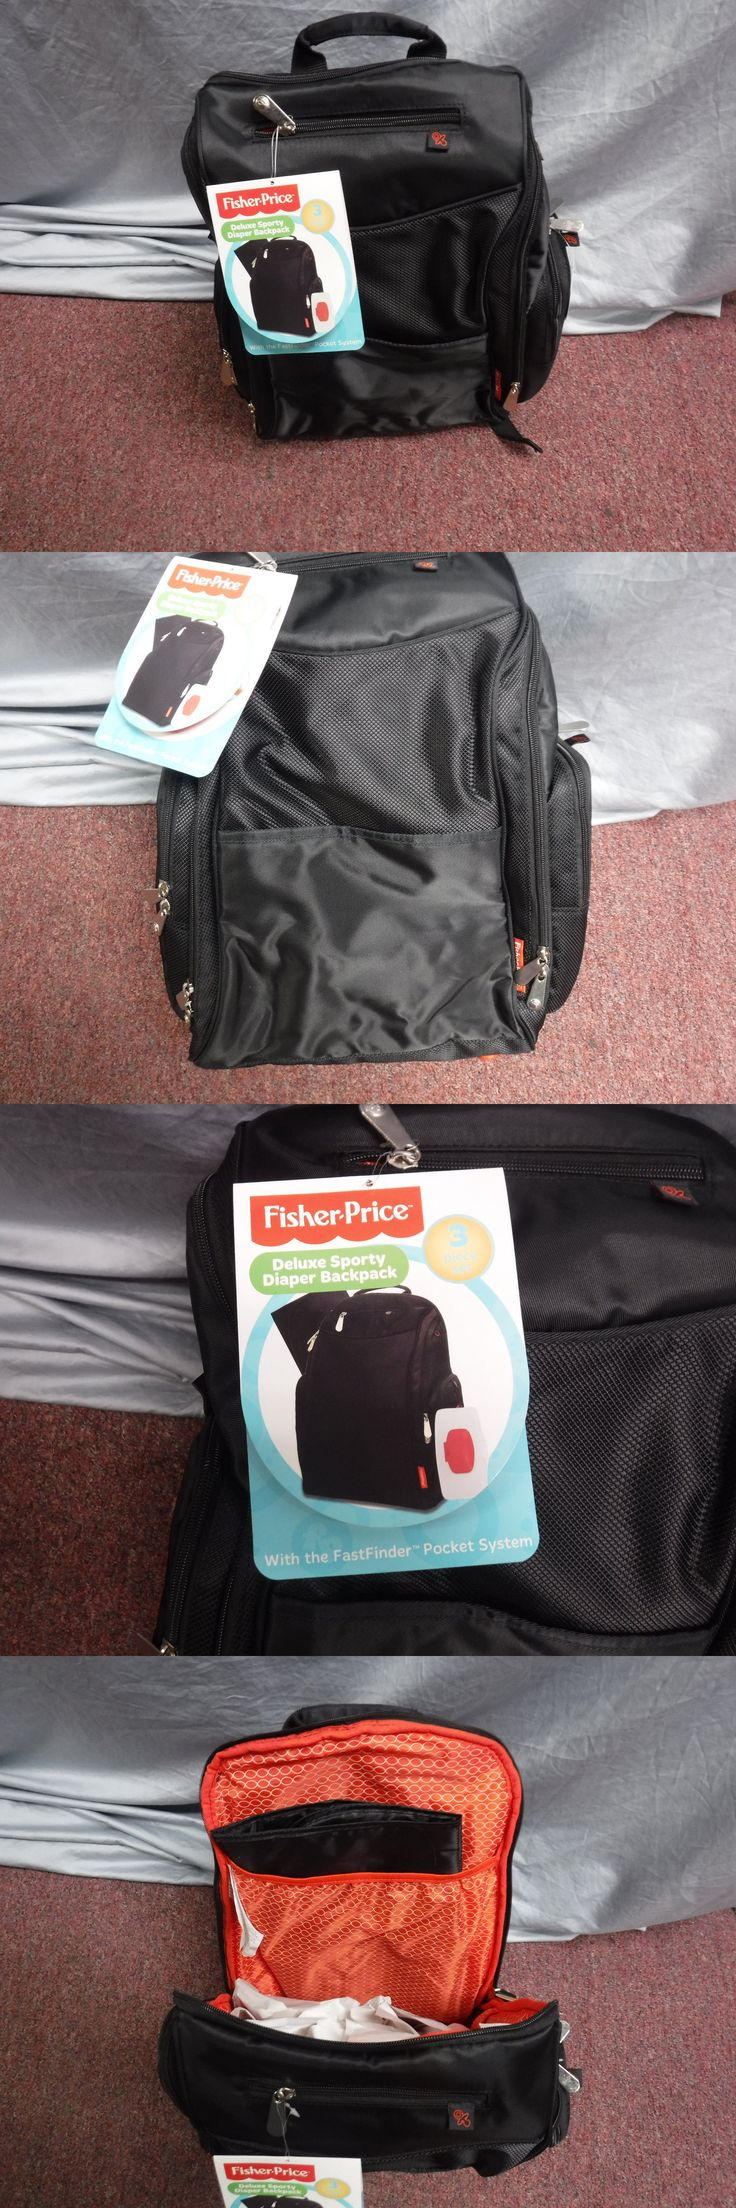 Diapering 45455: New Fisher Price Deluxe Sporty Backpack Diaper Bag 3 In 1 Set Black -> BUY IT NOW ONLY: $31.45 on eBay!